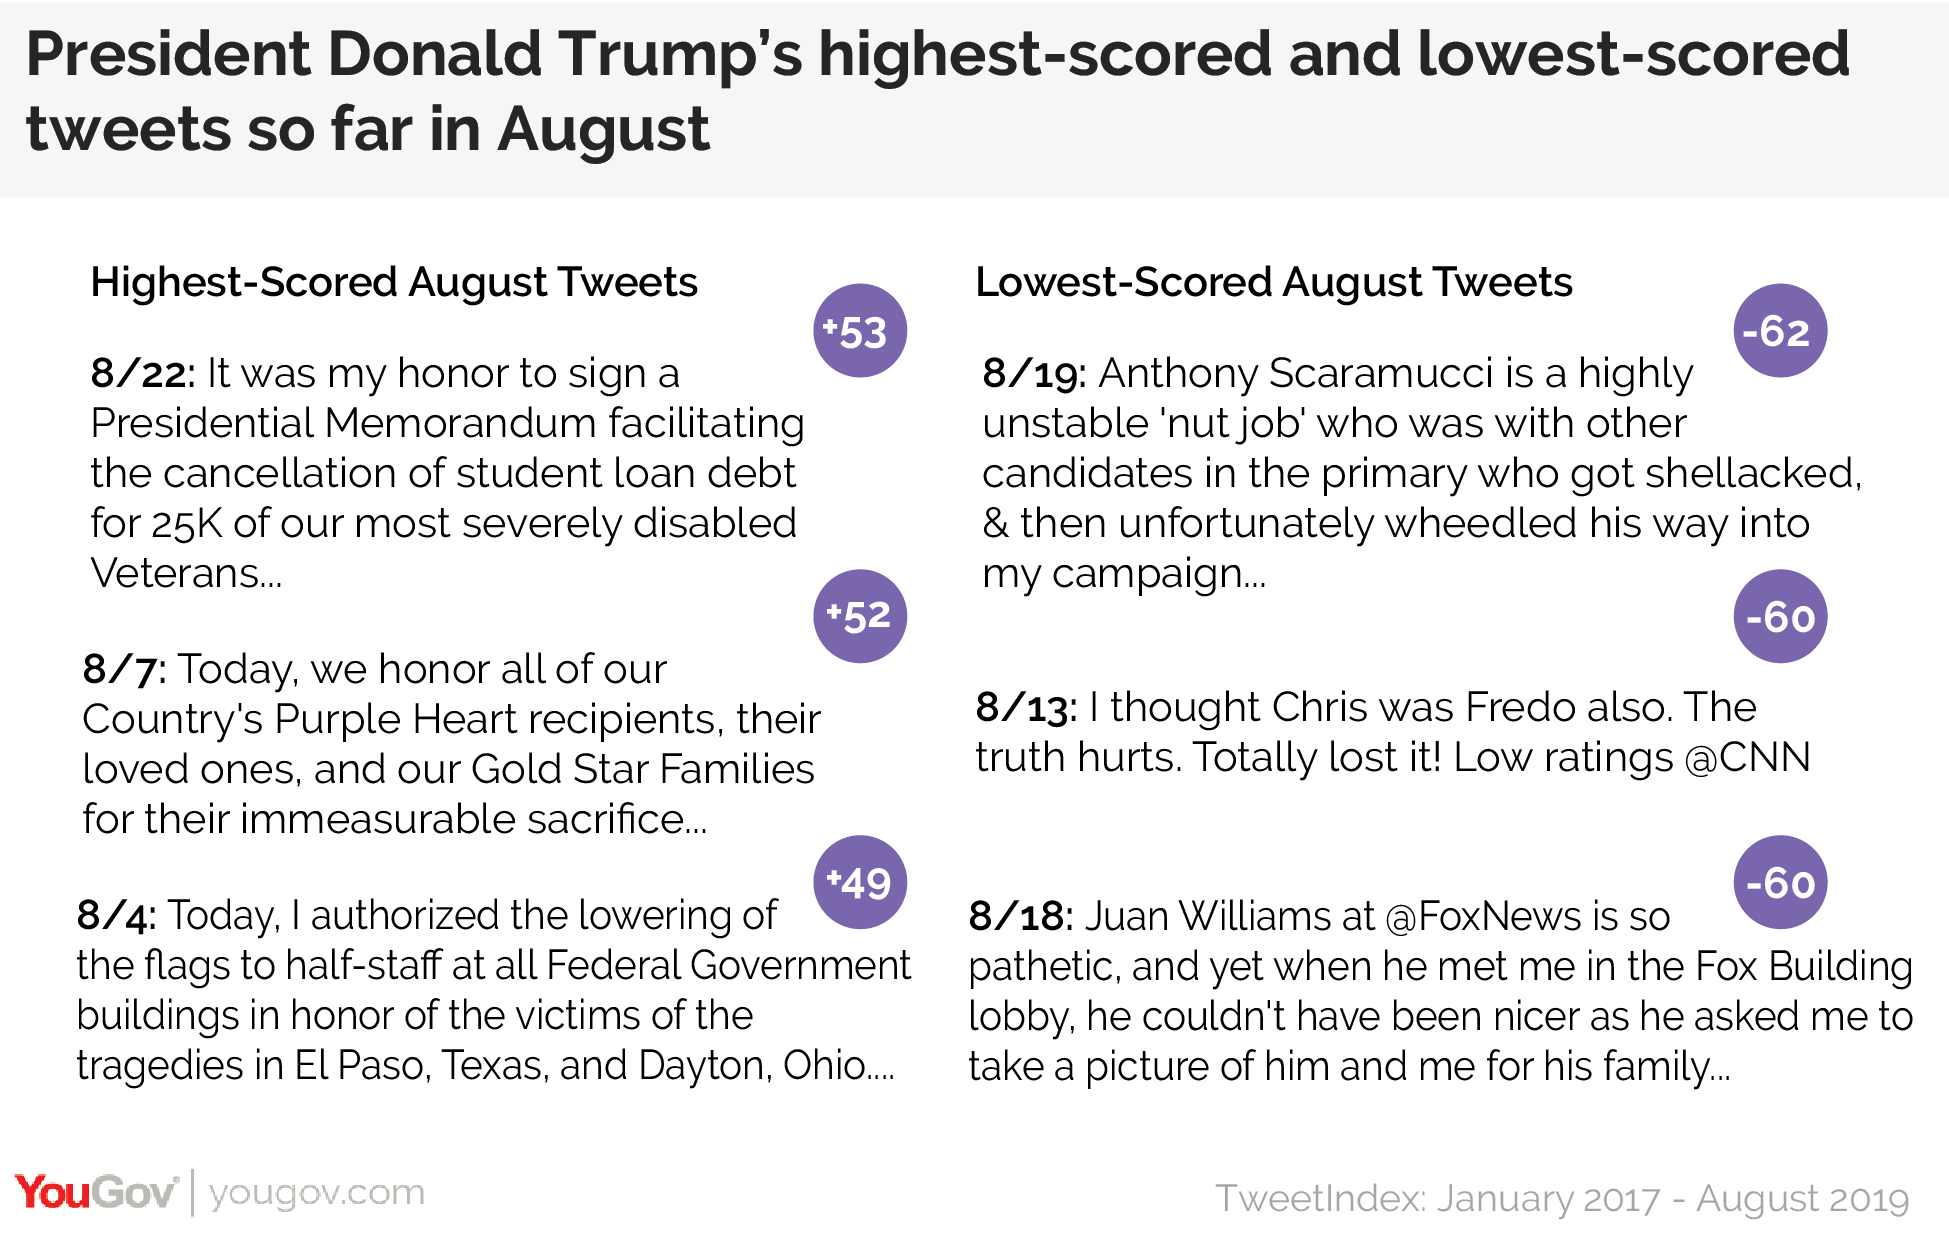 President Donald Trump's highest-scored and lowest-scored tweets in August